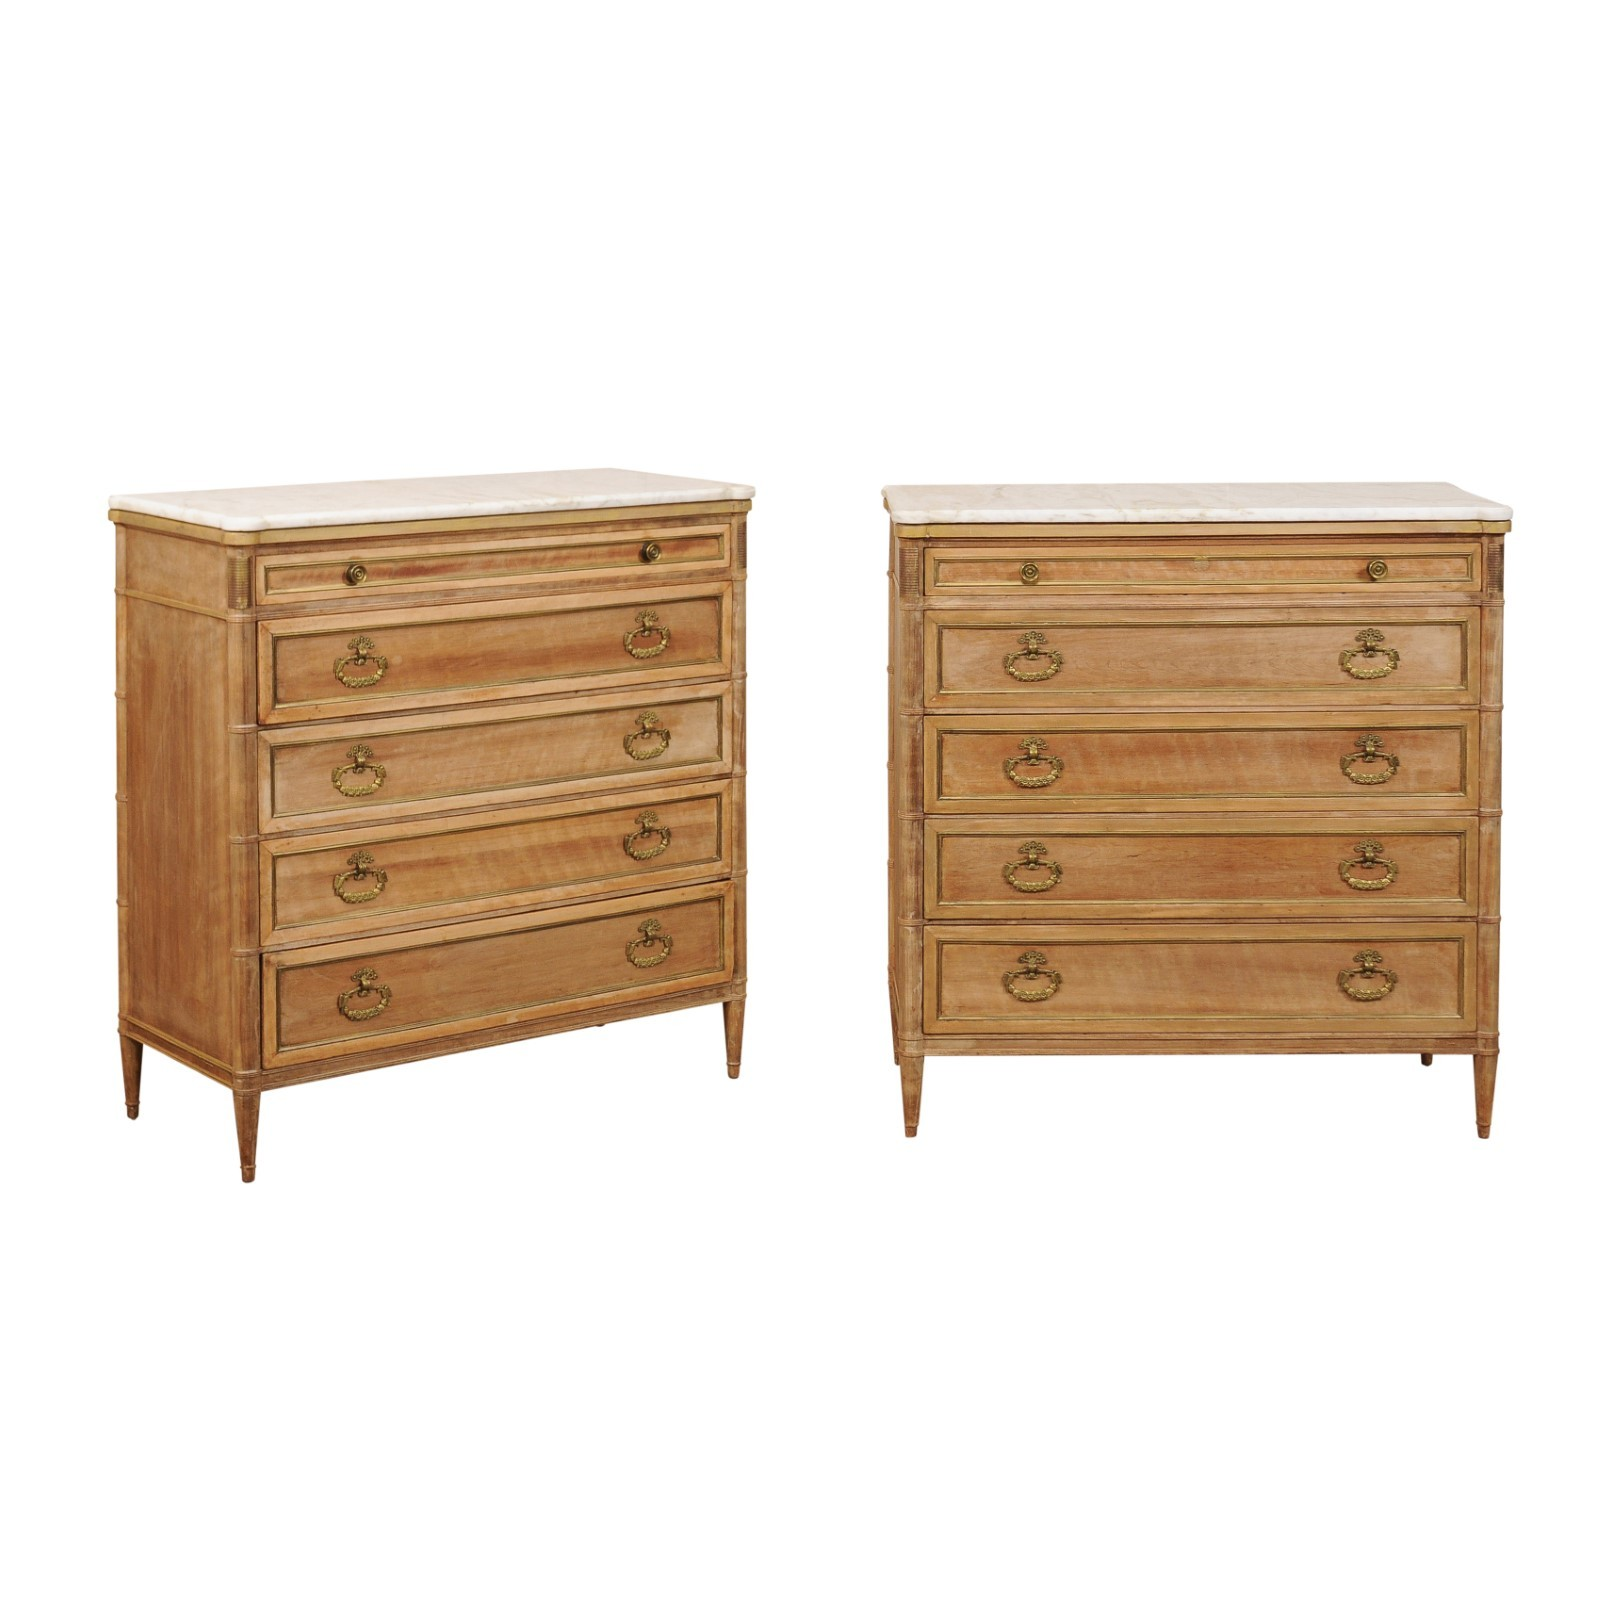 French Directoire Style Tallboy Chests